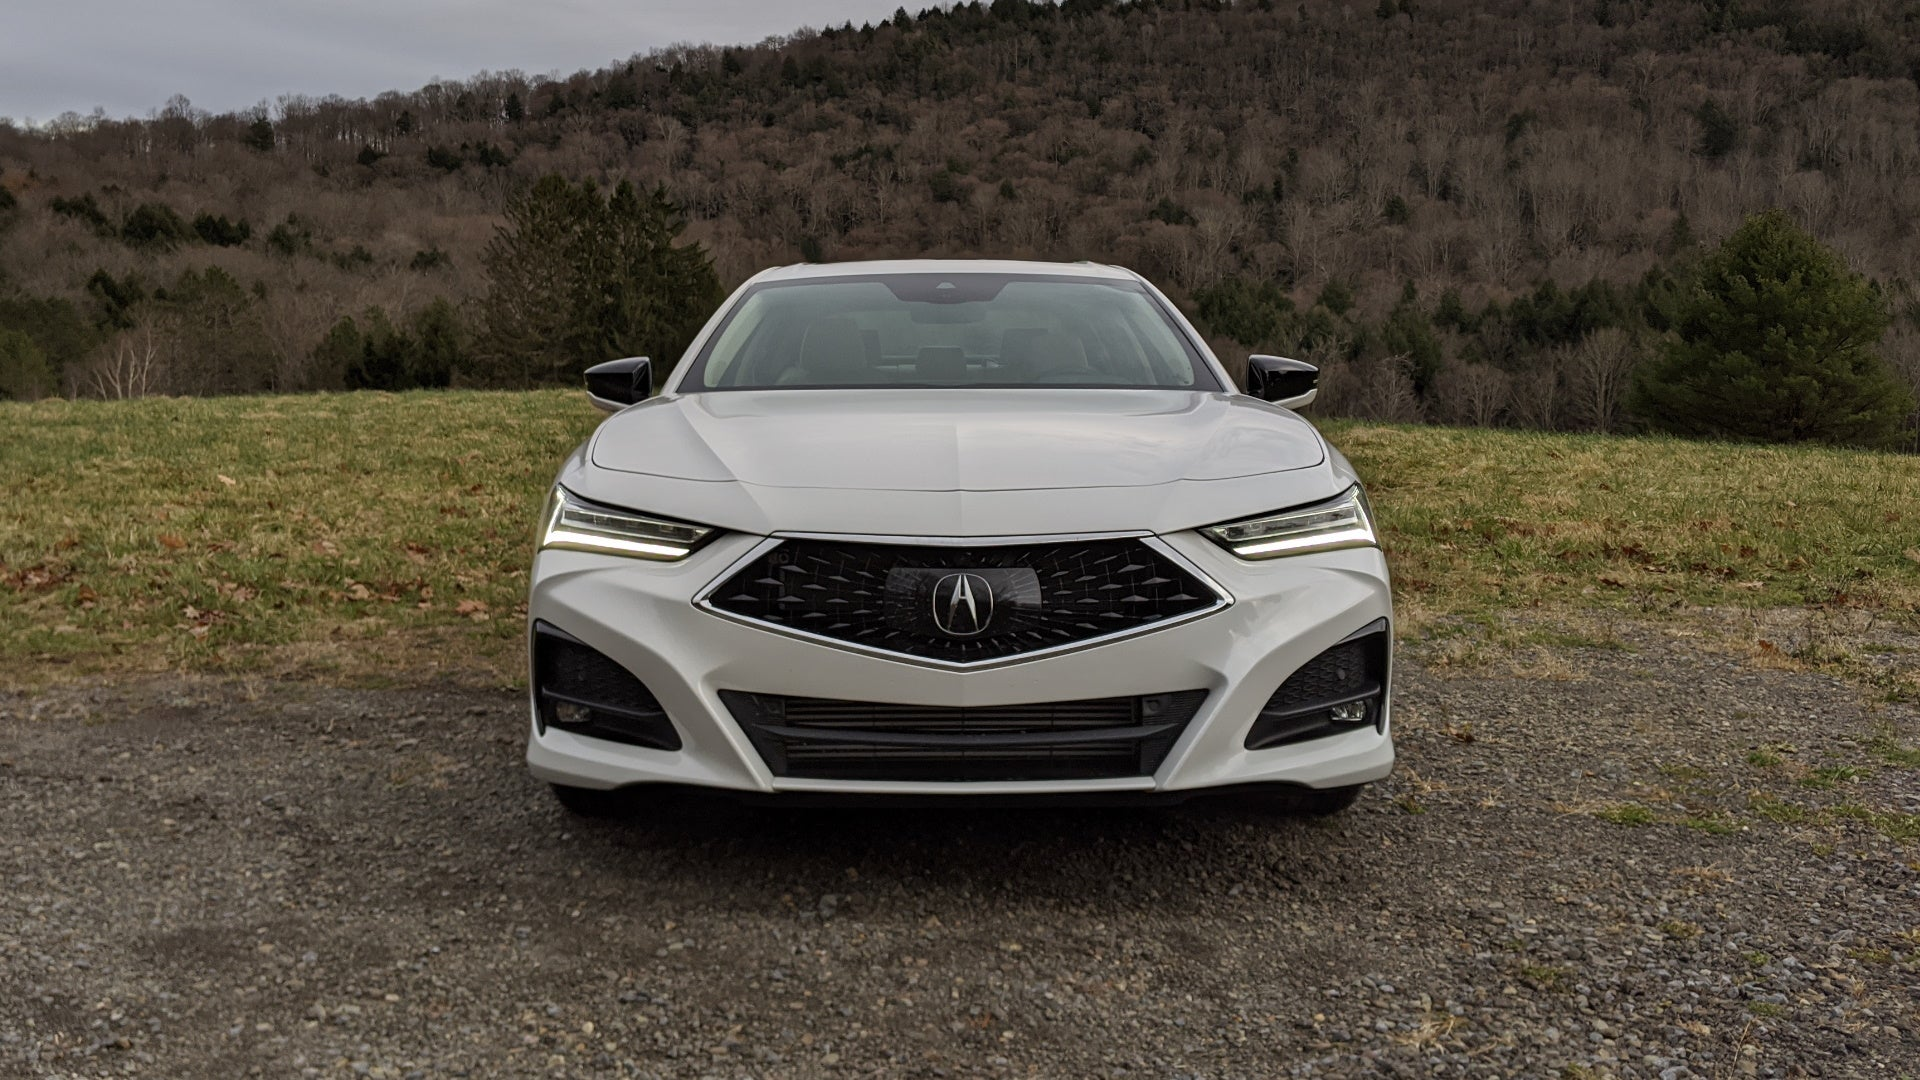 2021 Acura TLX Reviews - Page 43 - AcuraZine - Acura ...